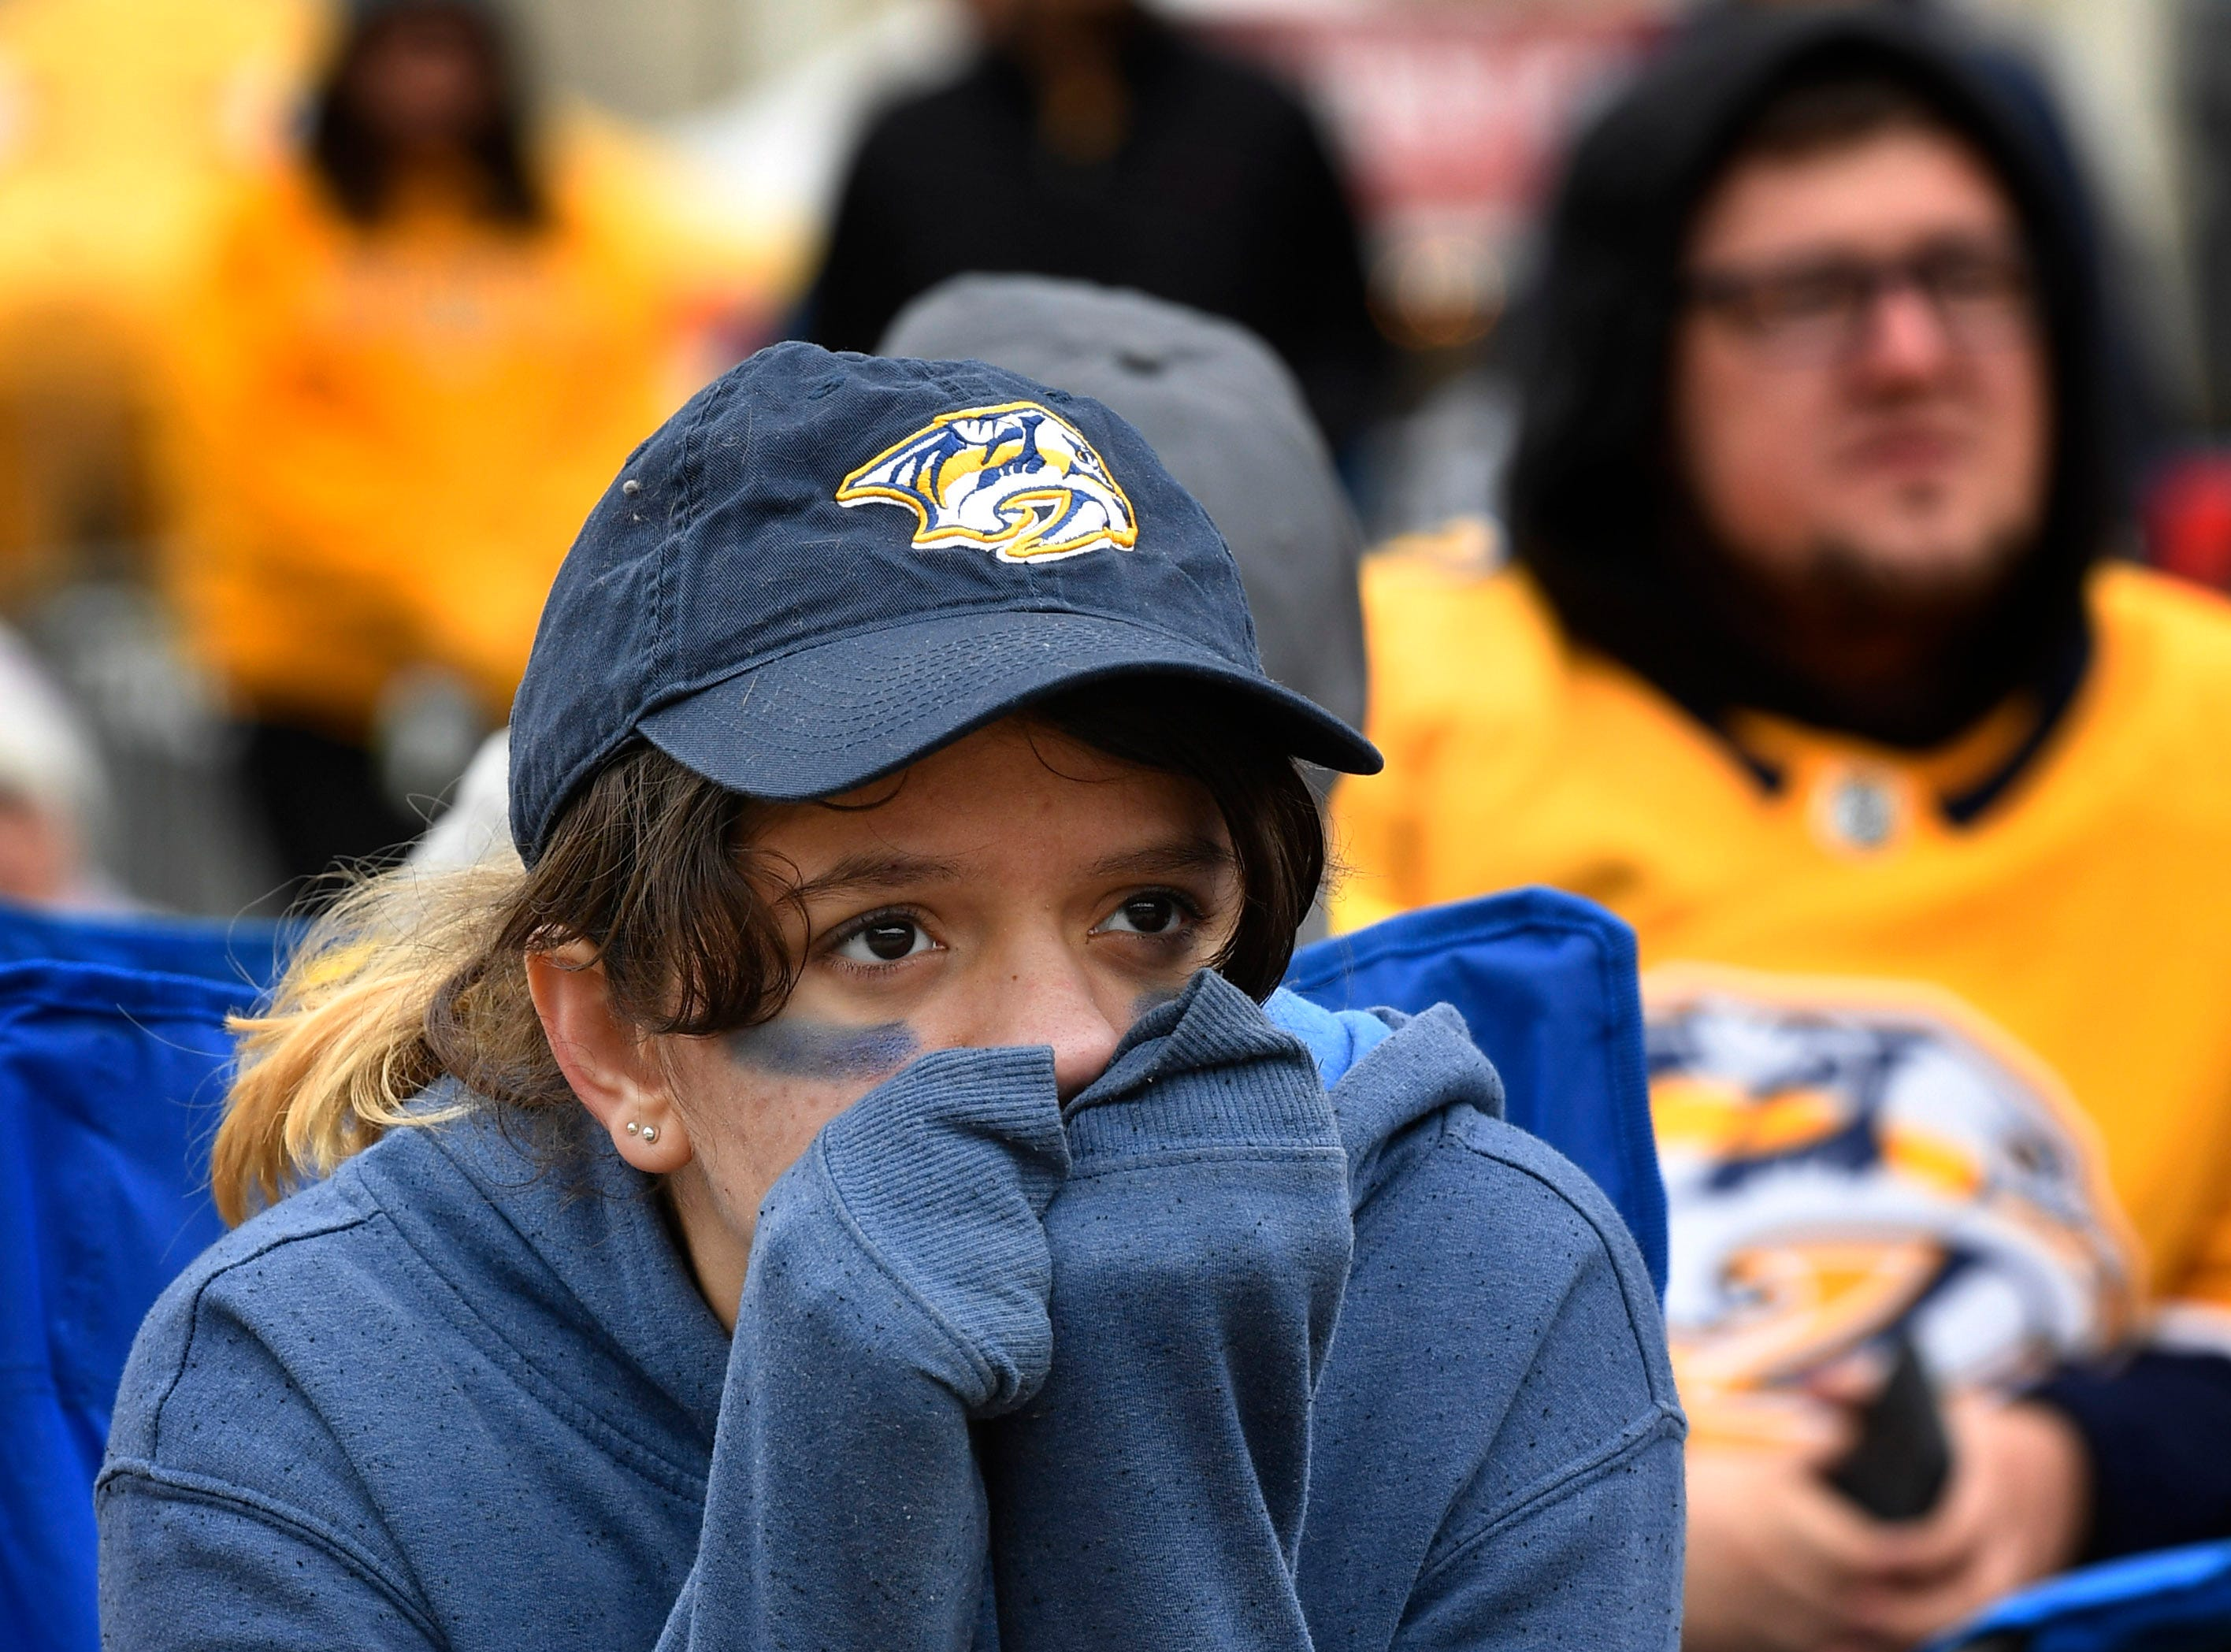 Elizabeth Faria tries to stay warm in chilly weather during the watch party of the divisional semifinal game against the Stars at Bridgestone ArenaSaturday, April 20, 2019, in Nashville, Tenn.